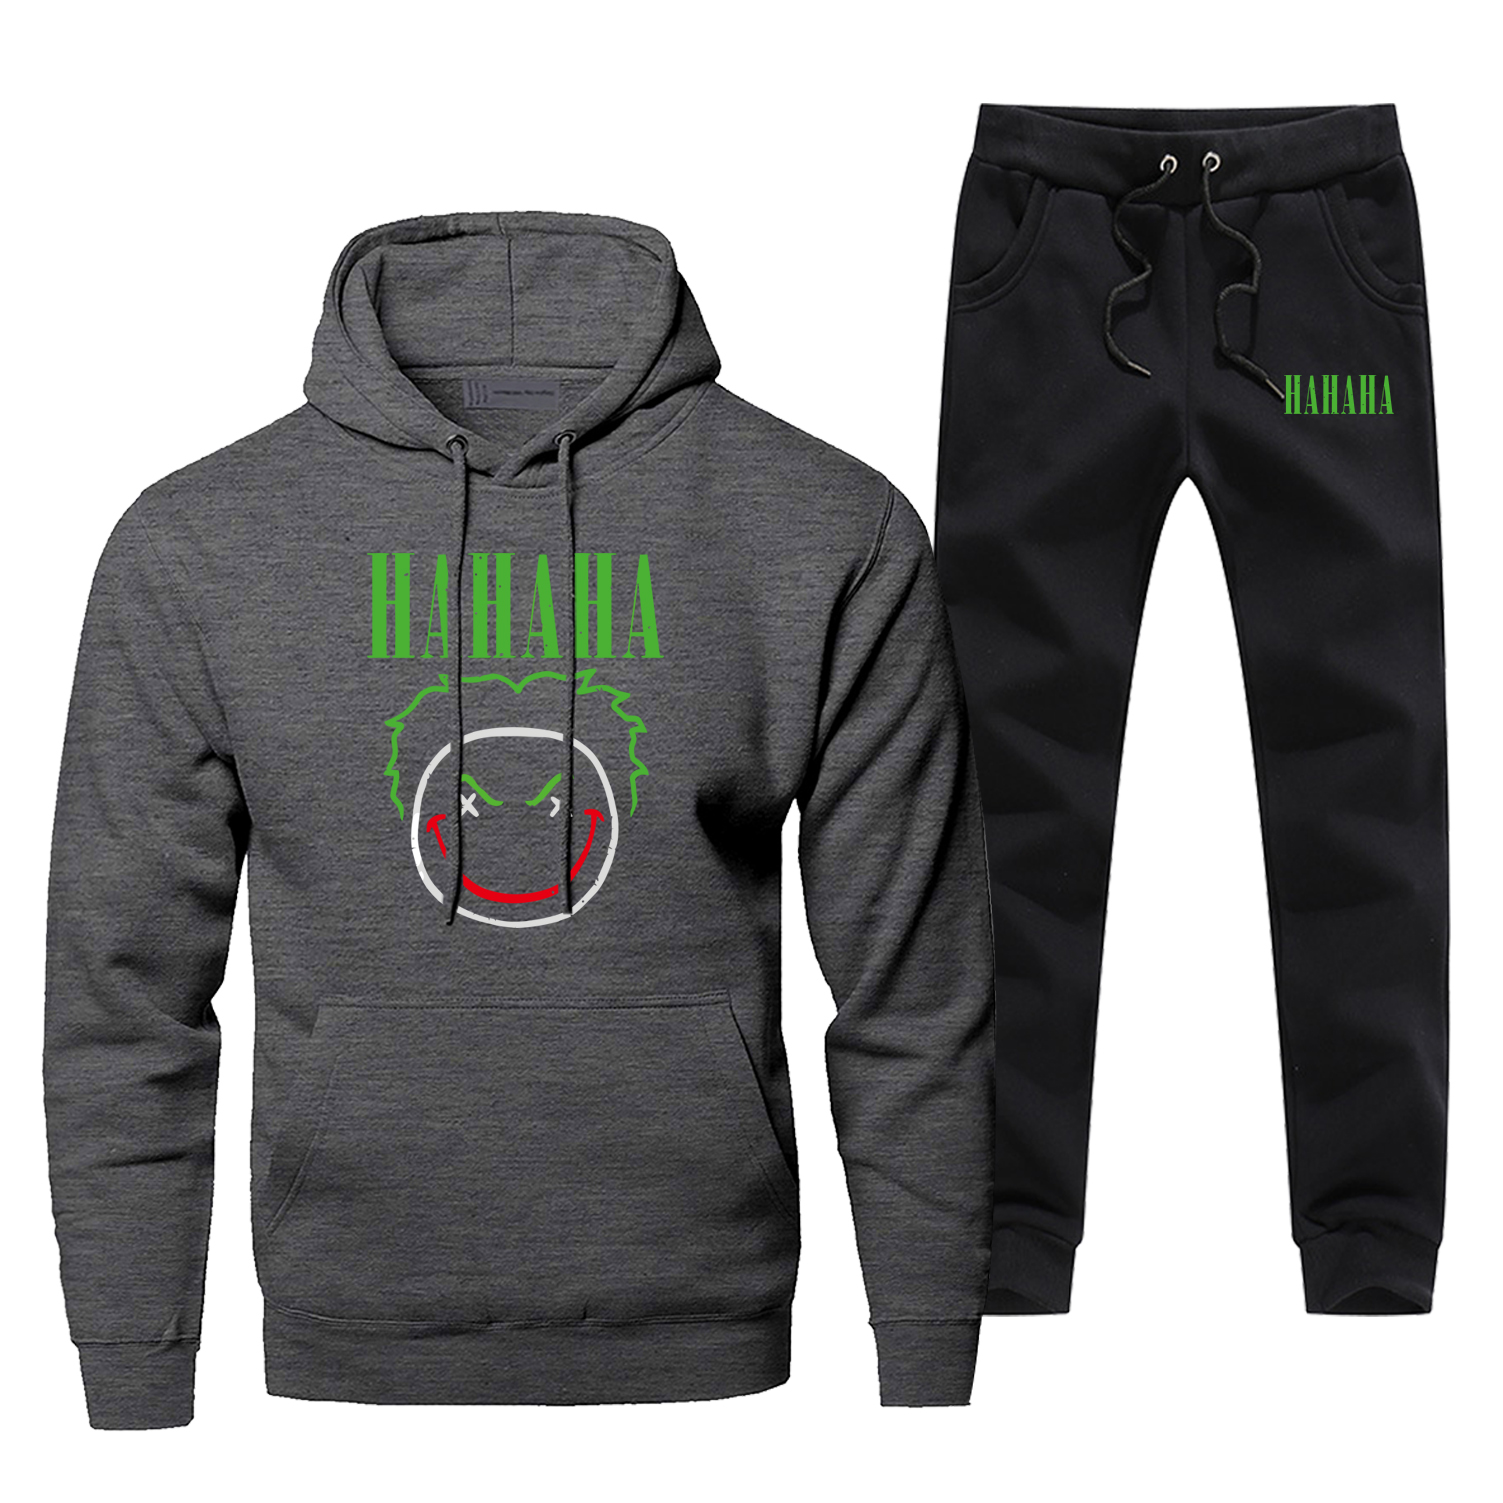 Joker Hoodie Pants Set Hahaha Villain Men Sweatshirt Male Hoodies Sweatshirts Mens Sets Two Piece Pant Pullover Jack Napier Coat